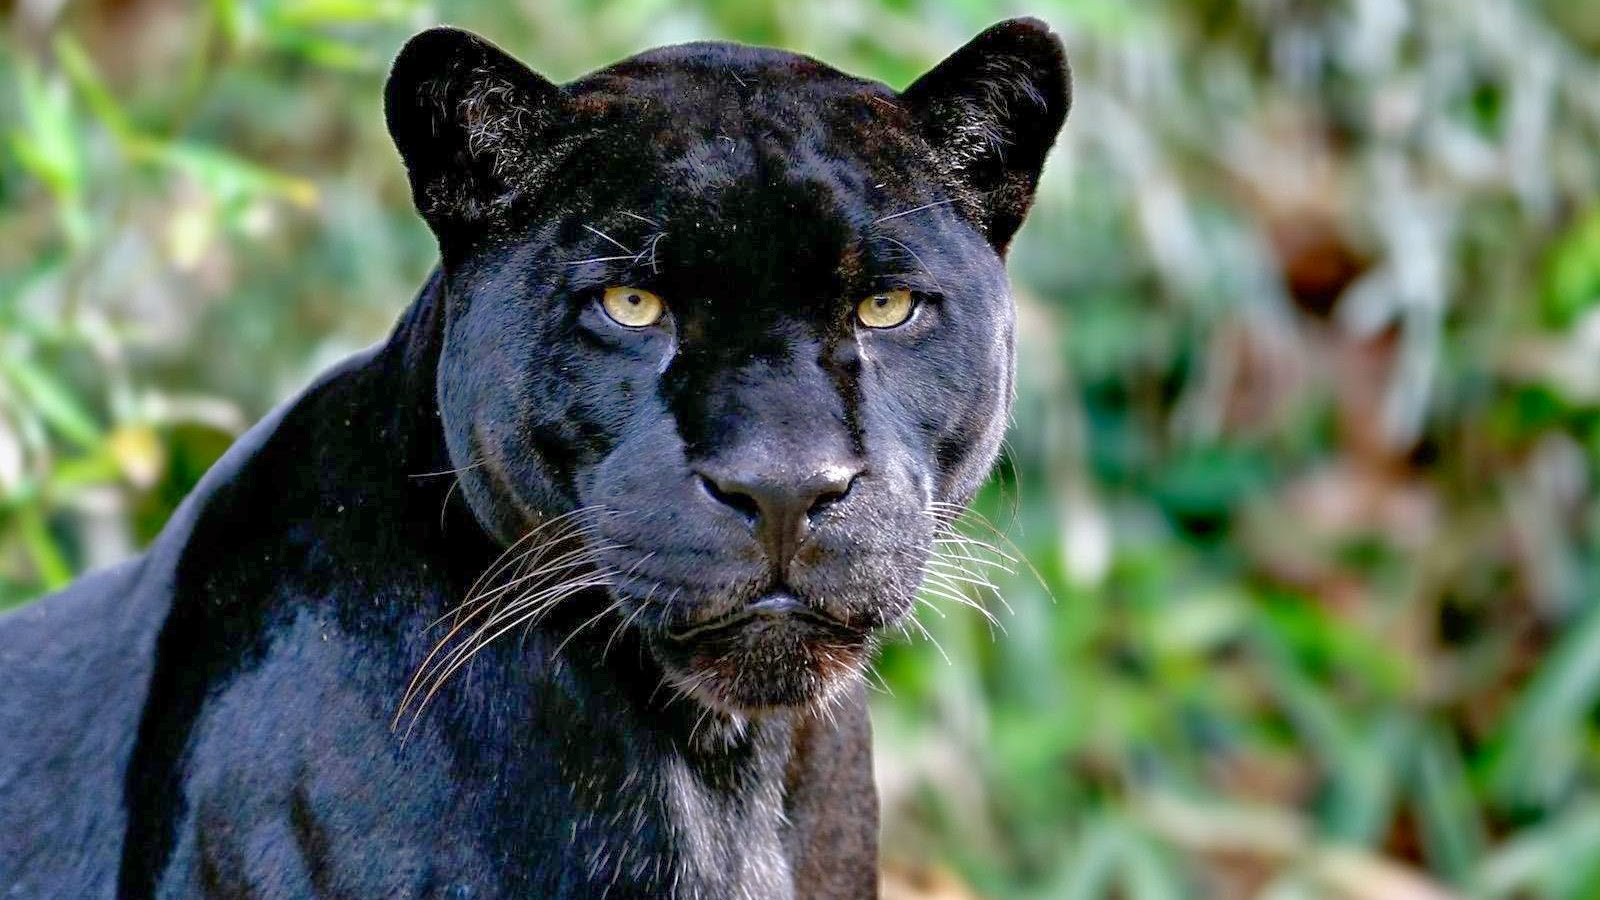 Angry black jaguar - photo#21